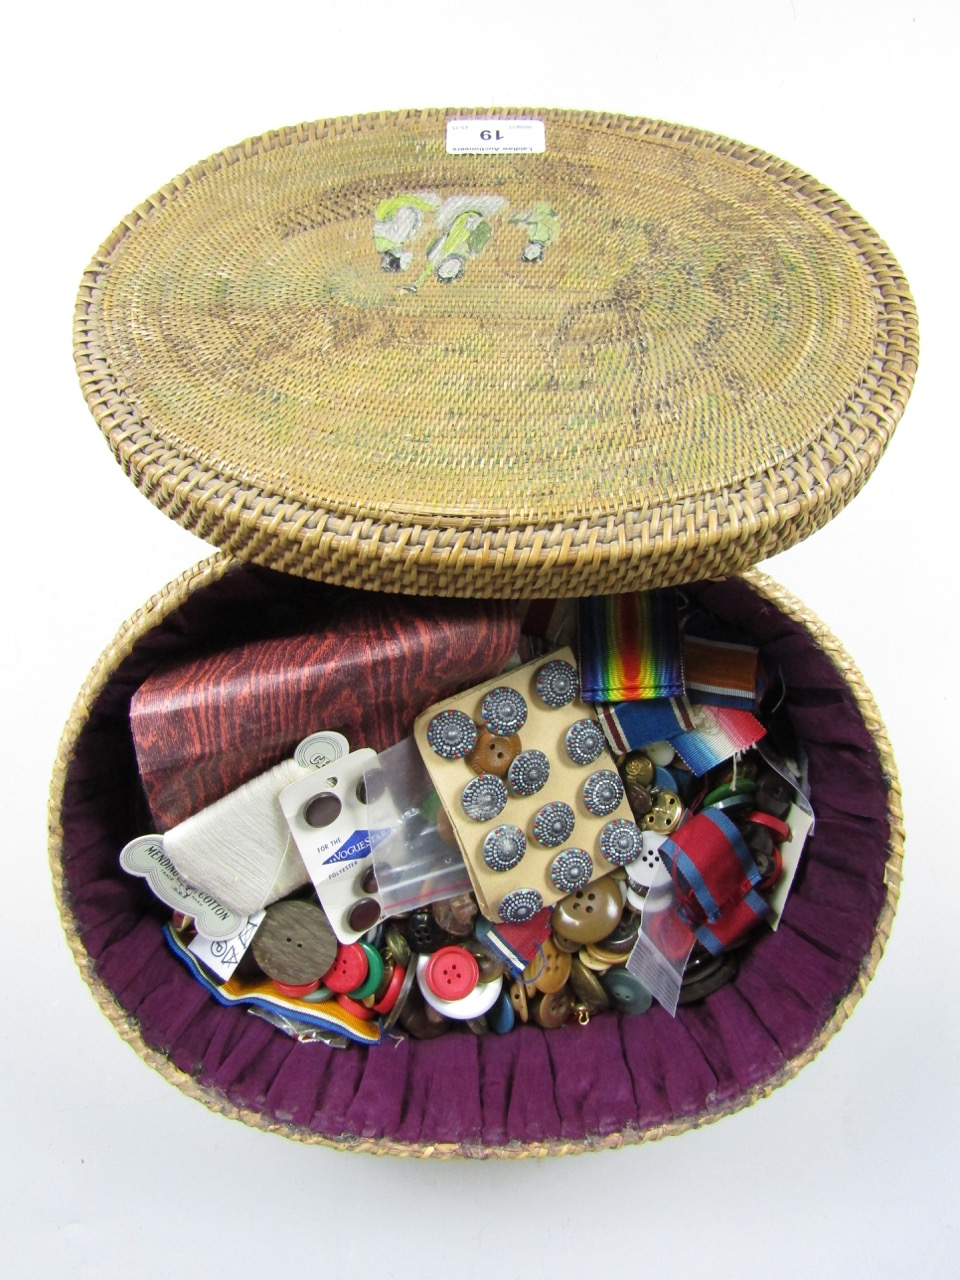 Lot 19 - A Japanese woven sewing box with a quantity of buttons